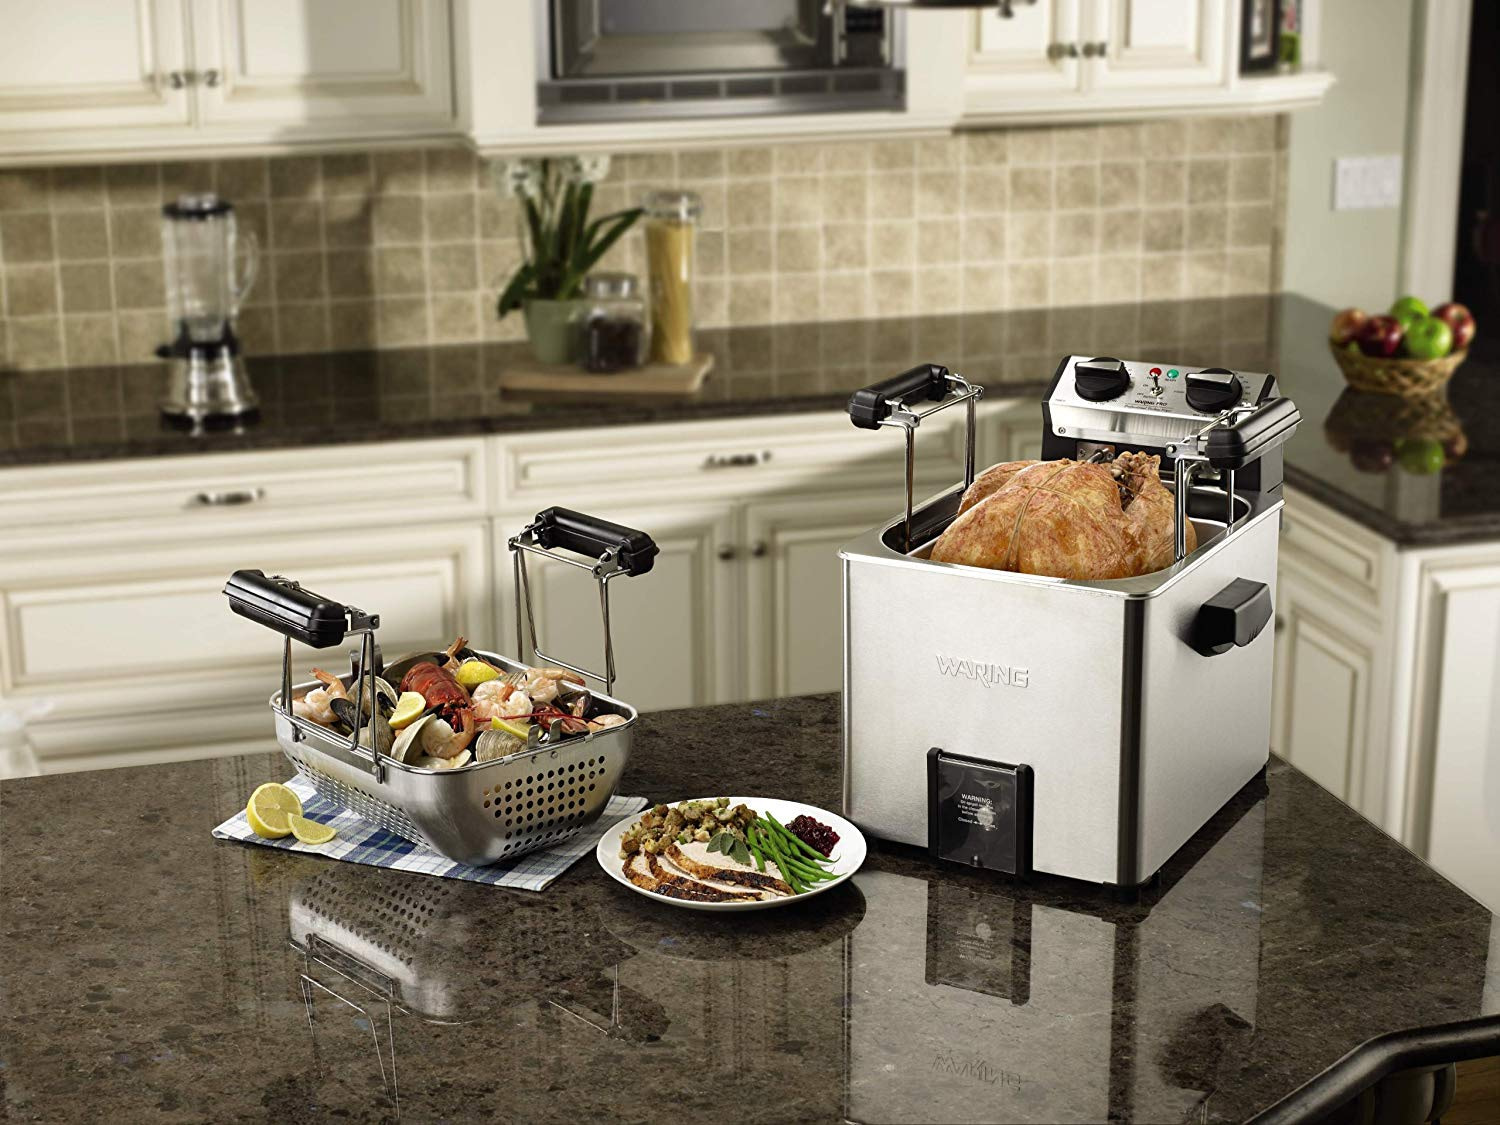 Waring Pro TF200B Turkey Fryer Steamer Review